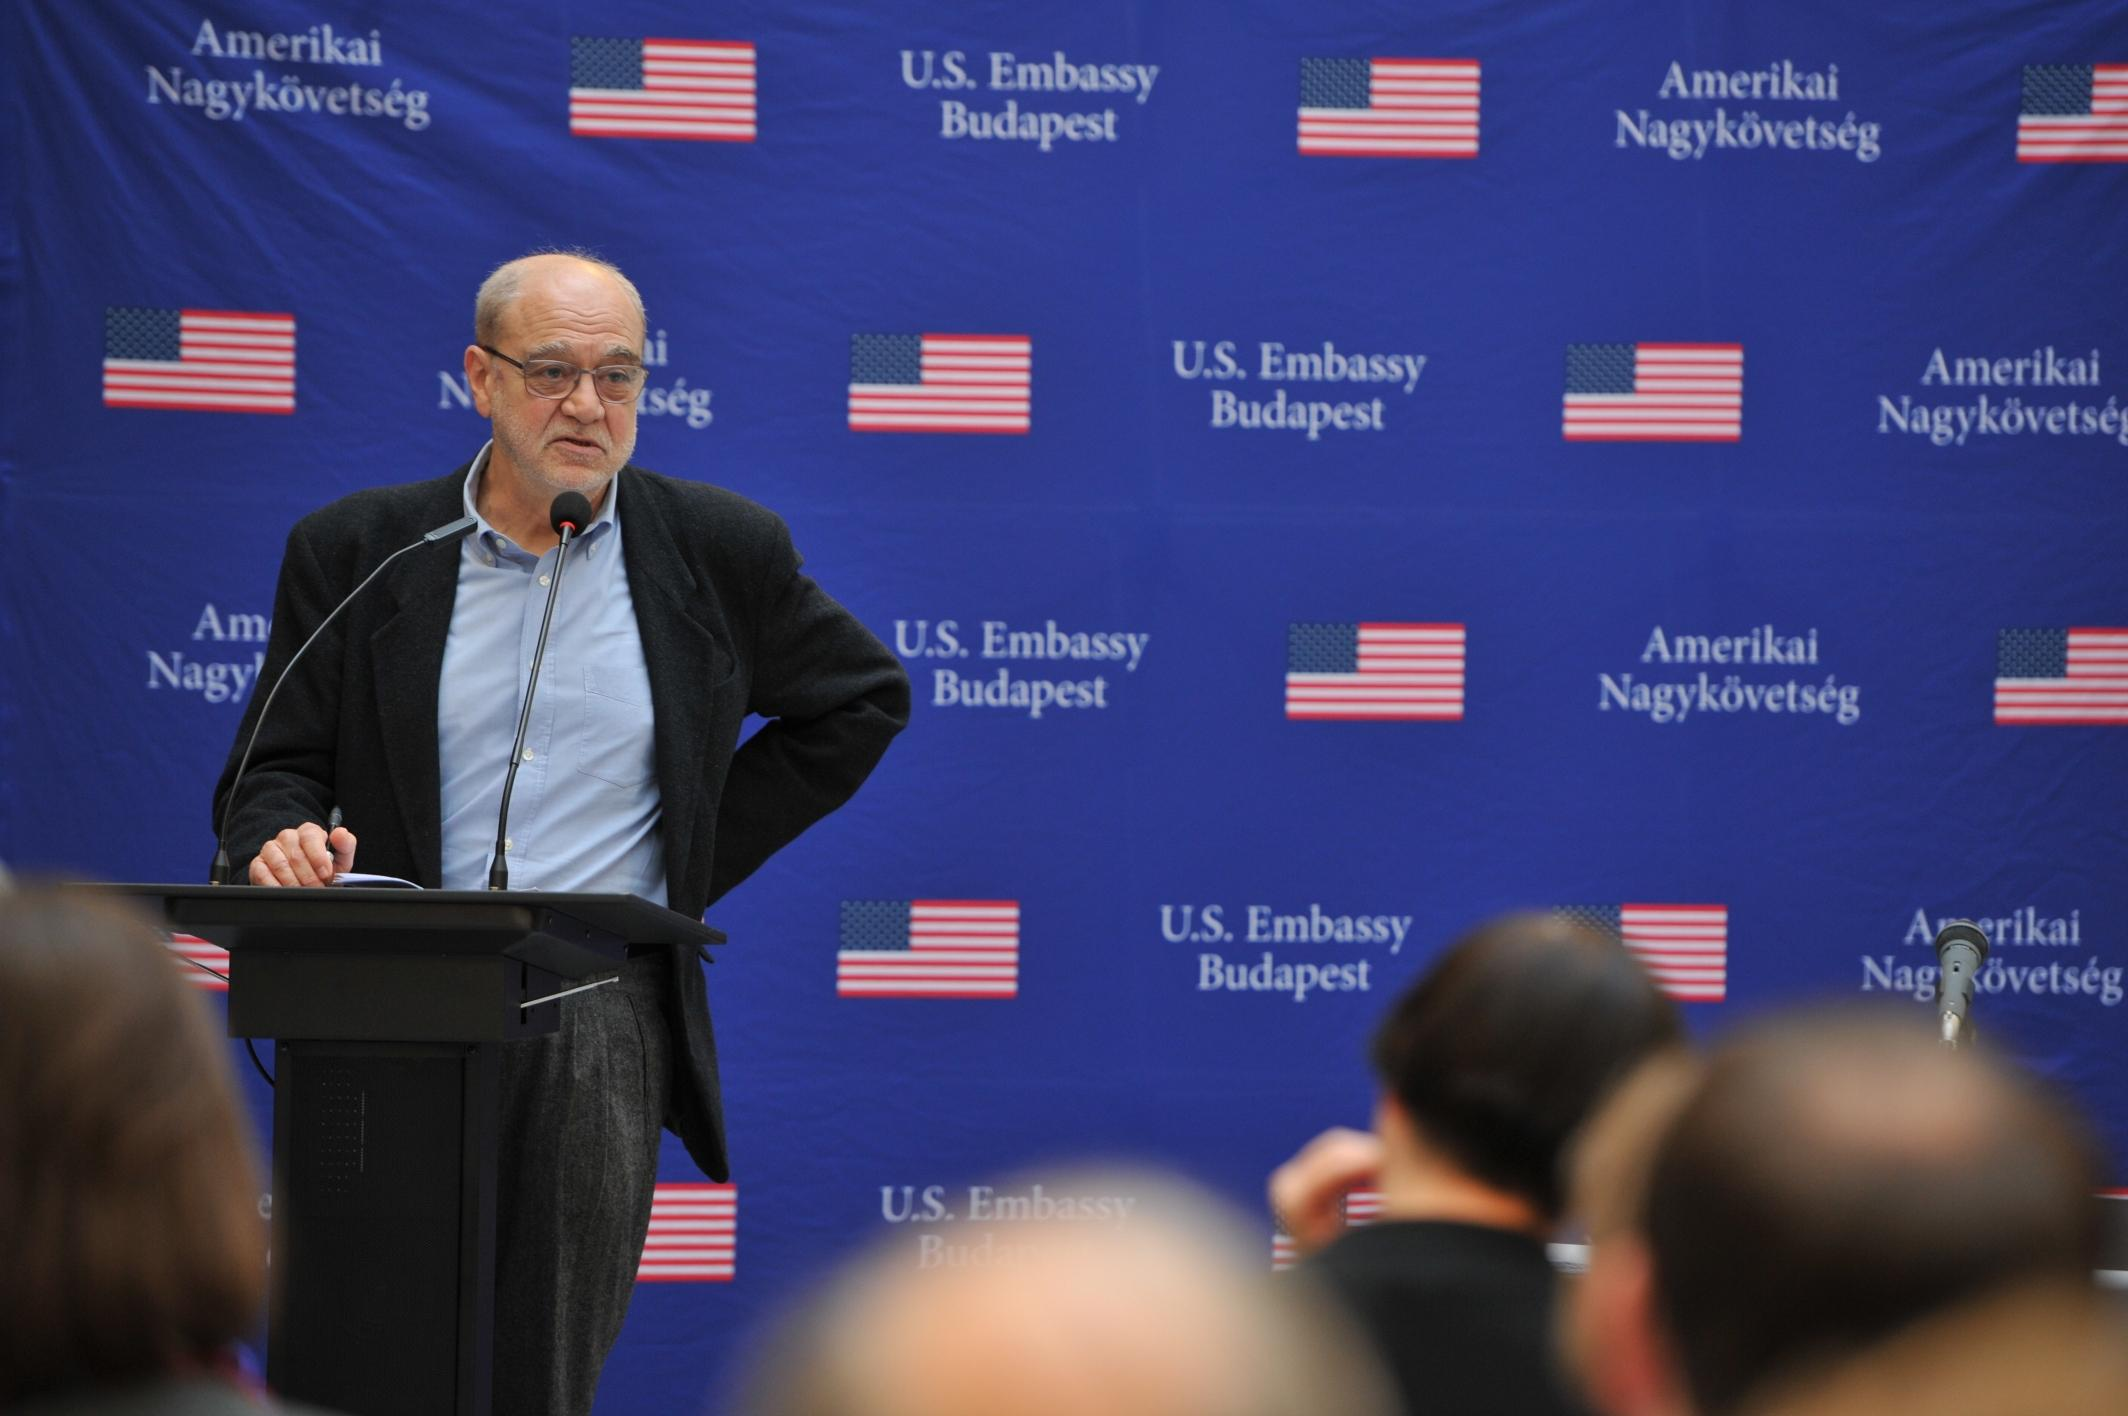 """Professor Andras Kovacs, Director of Jewish Studies at CEU's Department of History at the book launch of  """"The Future of Holocaust Memorialization"""" at CEU. Image credit: U.S. Embassy"""